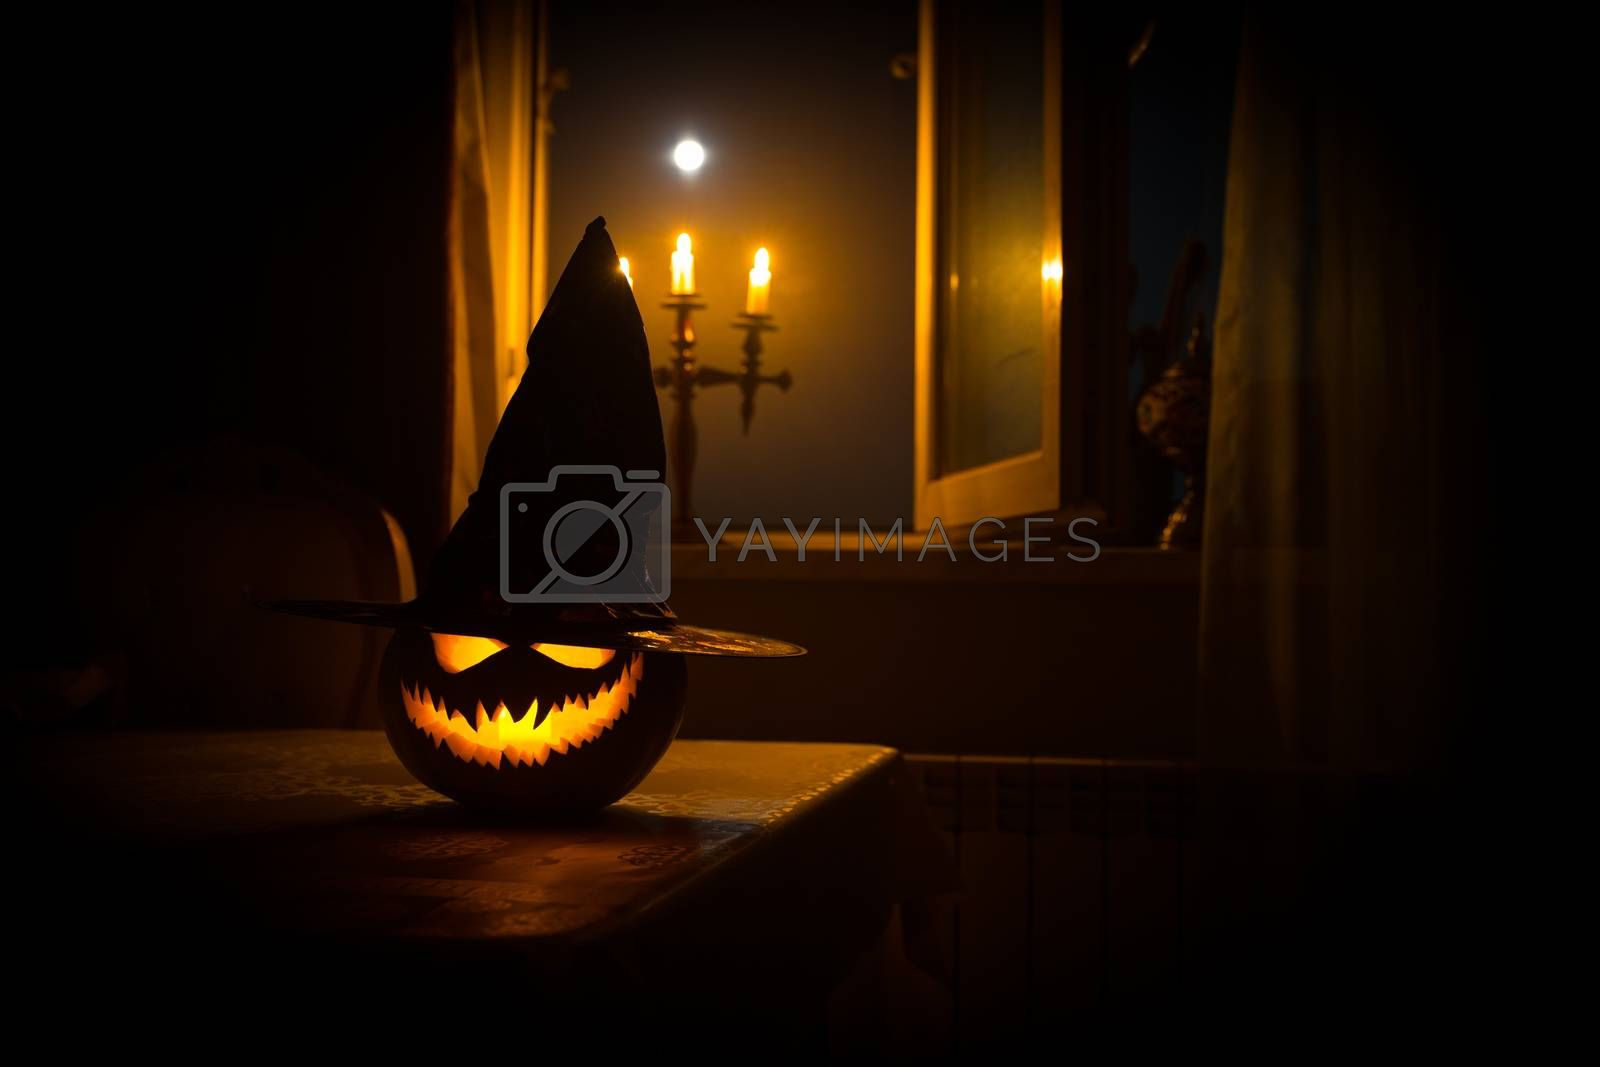 Scary Halloween pumpkin in the mystical house window at night or halloween pumpkin in night on room with blue window. Symbol of halloween in window. by Zeferli